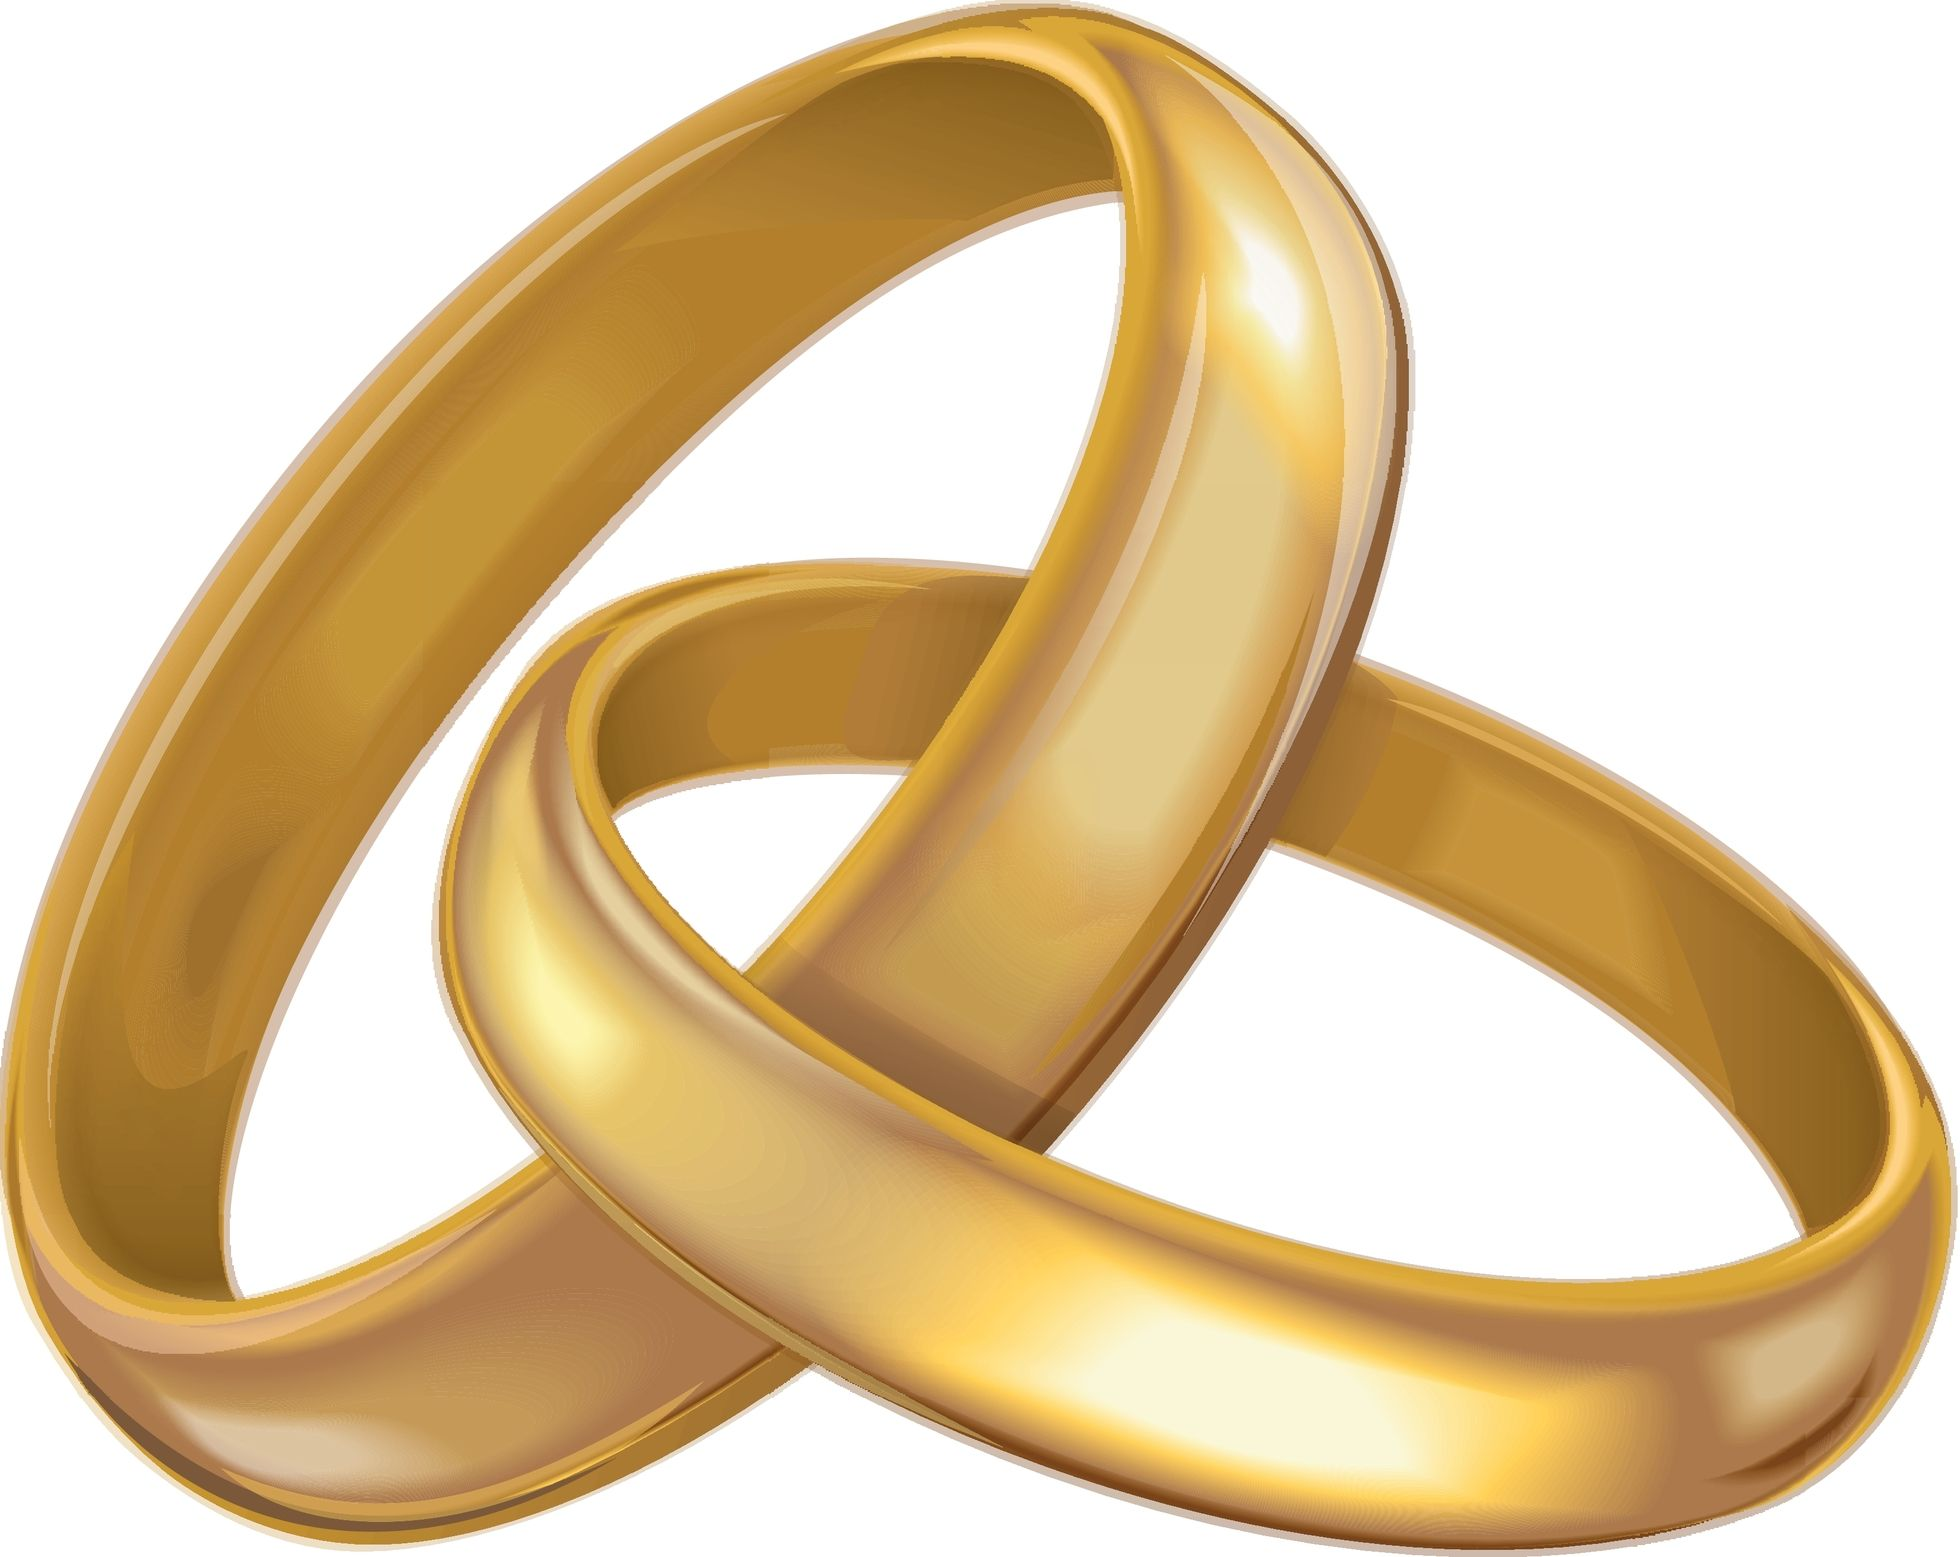 Anniversary clipart married. Wedding rings the cliparts